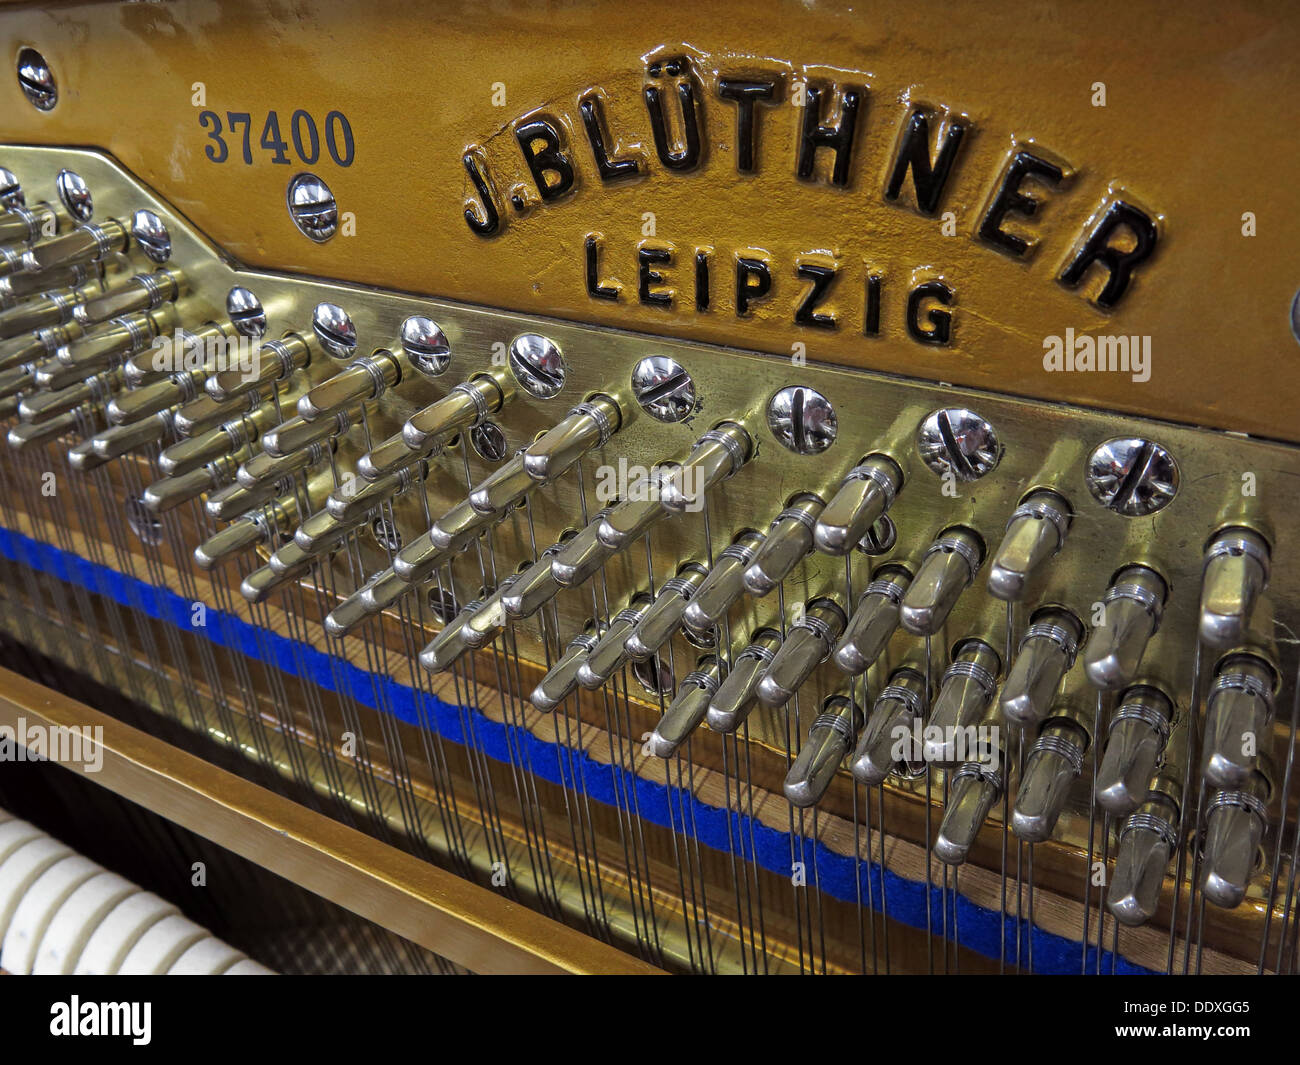 Restored J. Bluthner Leipzig Germany piano 37400 - Stock Image